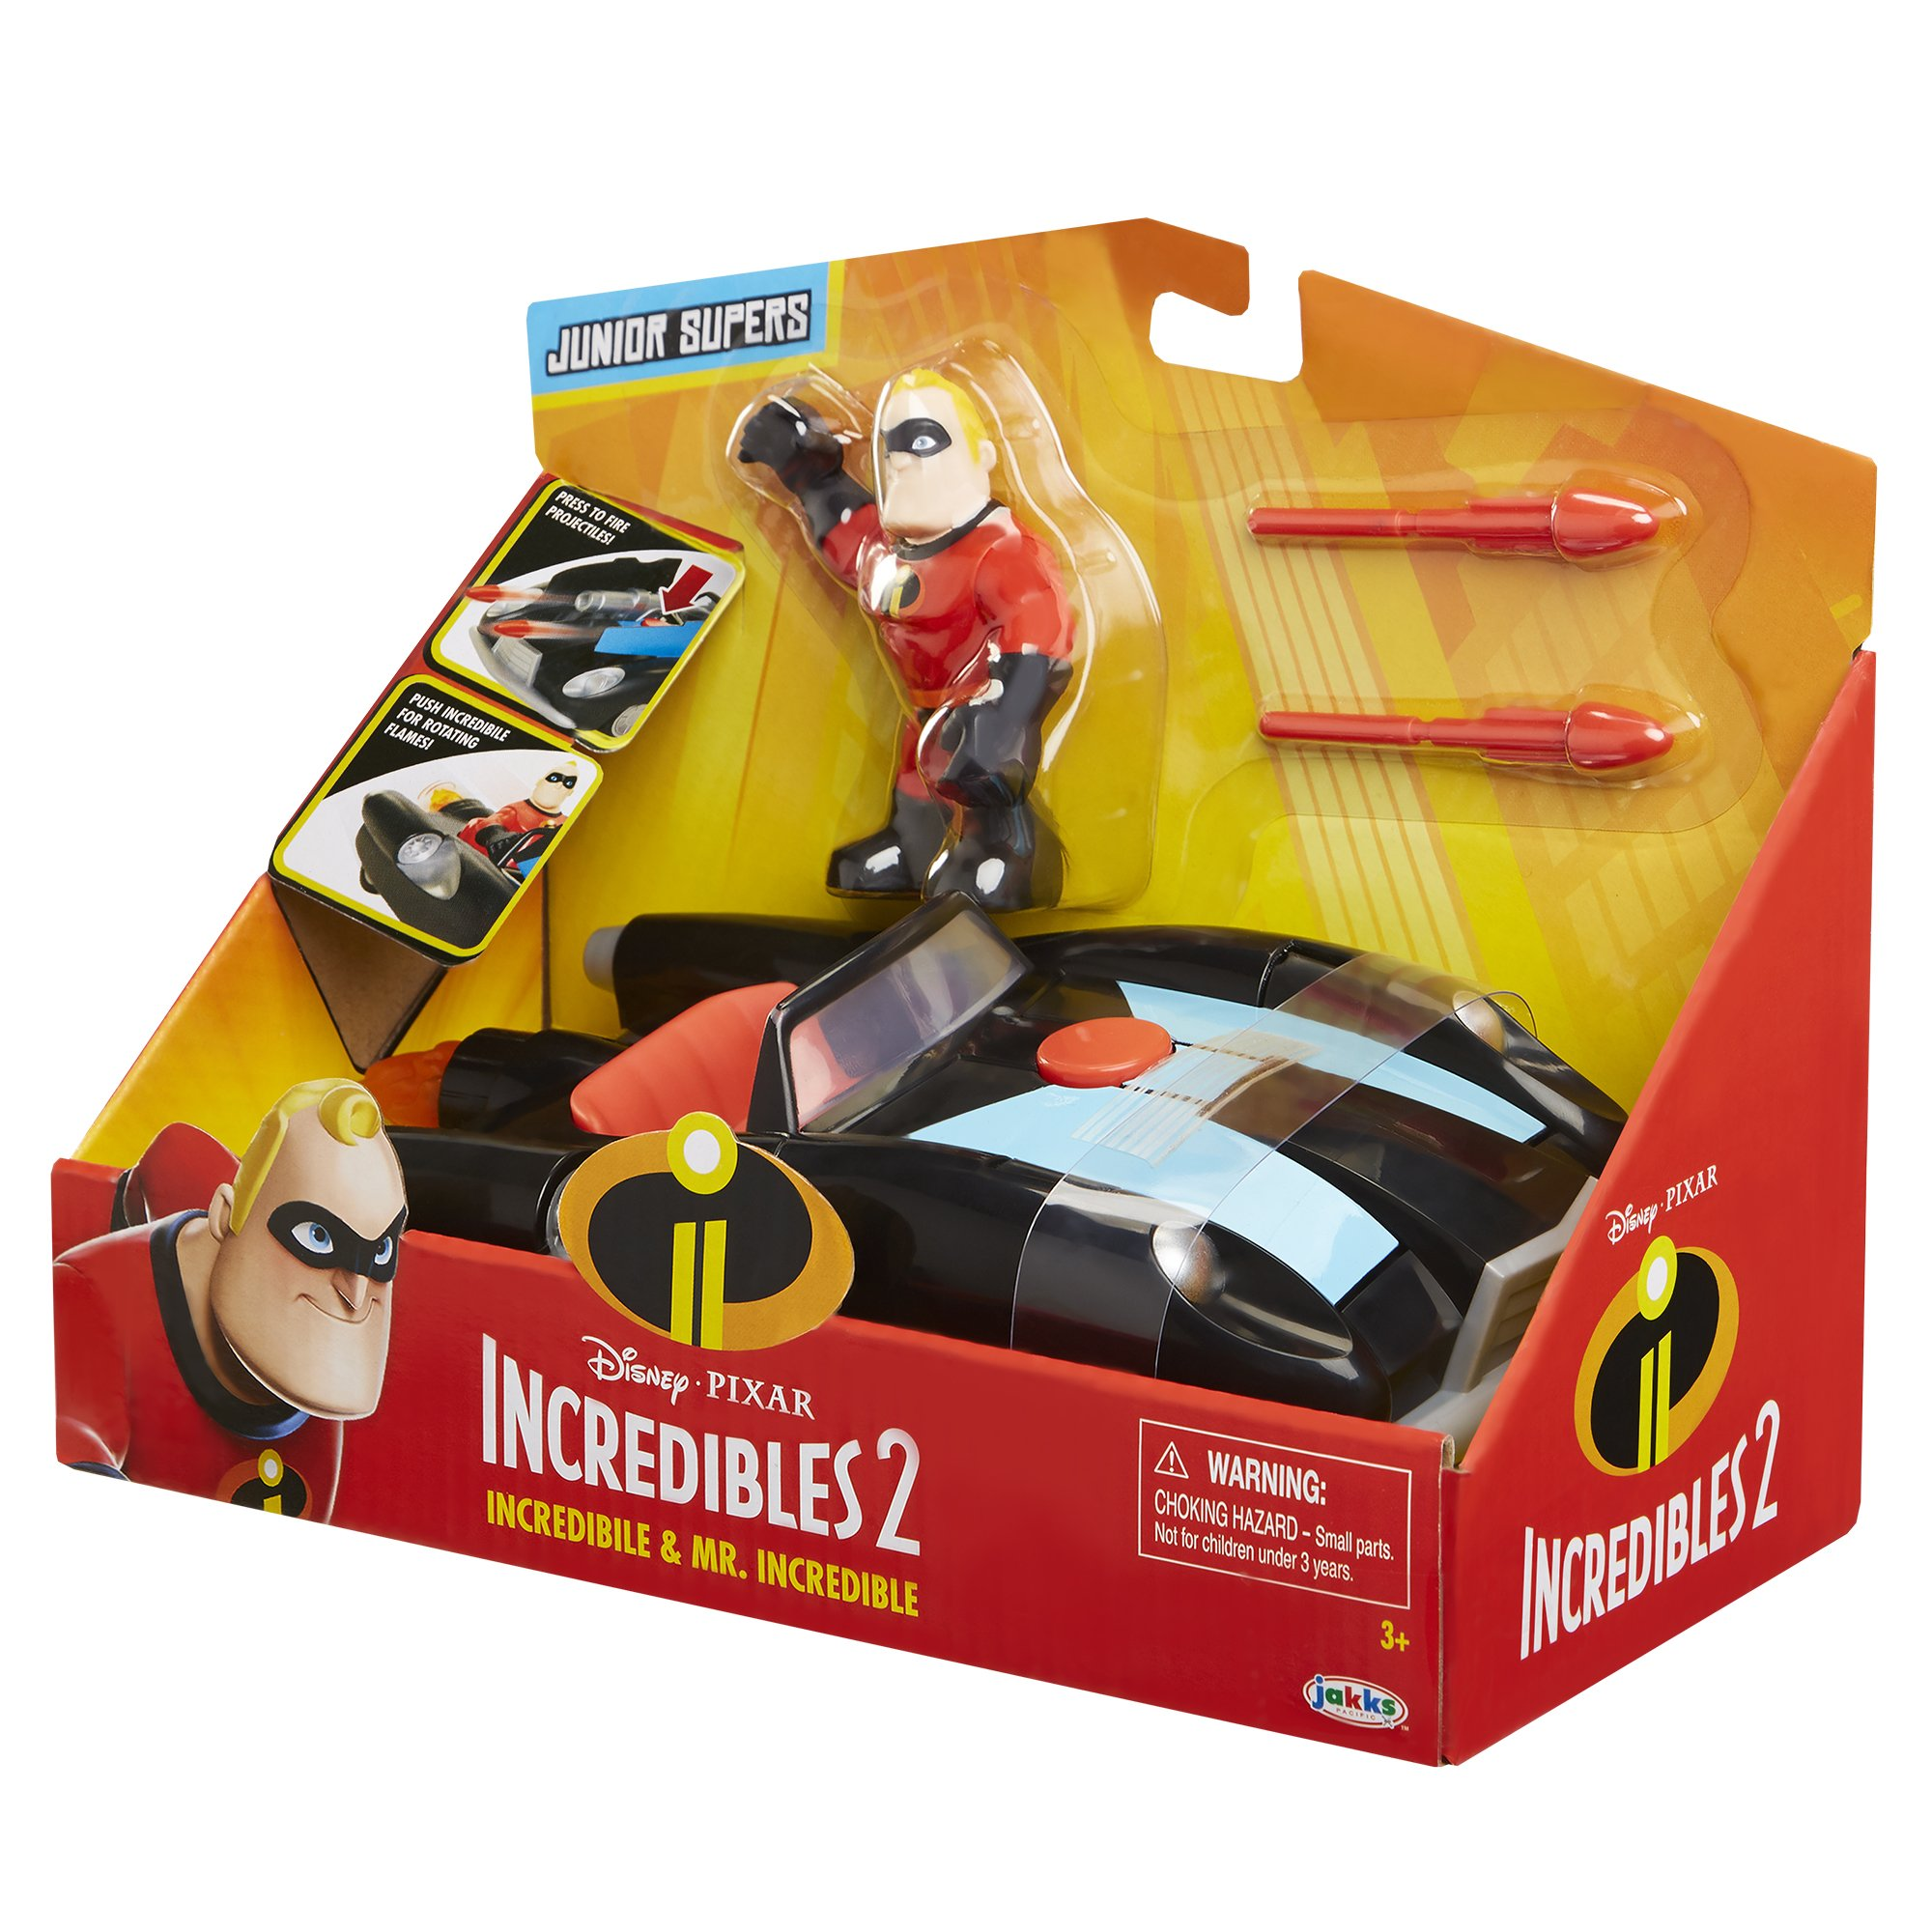 The Incredibles 2 Incredibile Car & Mr. Incredible Action Figure 2-Piece Set, Black Car and Red Mr. Incredible Figure, Medium by The Incredibles 2 (Image #6)